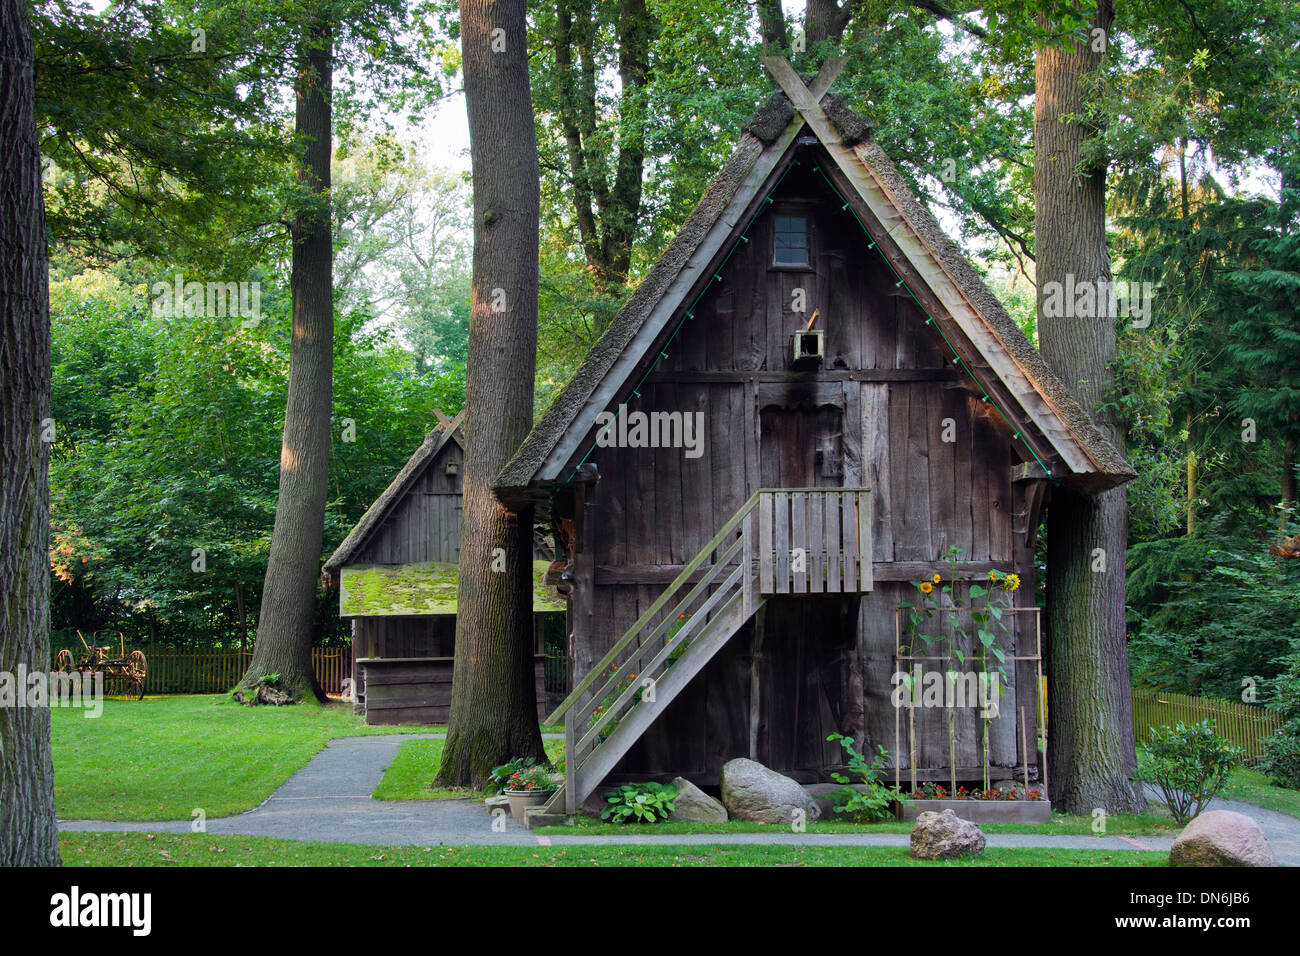 Treppenspeicher, wooden granary at the Rischmannshof Heath Museum, open air museum at Walsrode, Lüneburg Heath, Germany - Stock Image